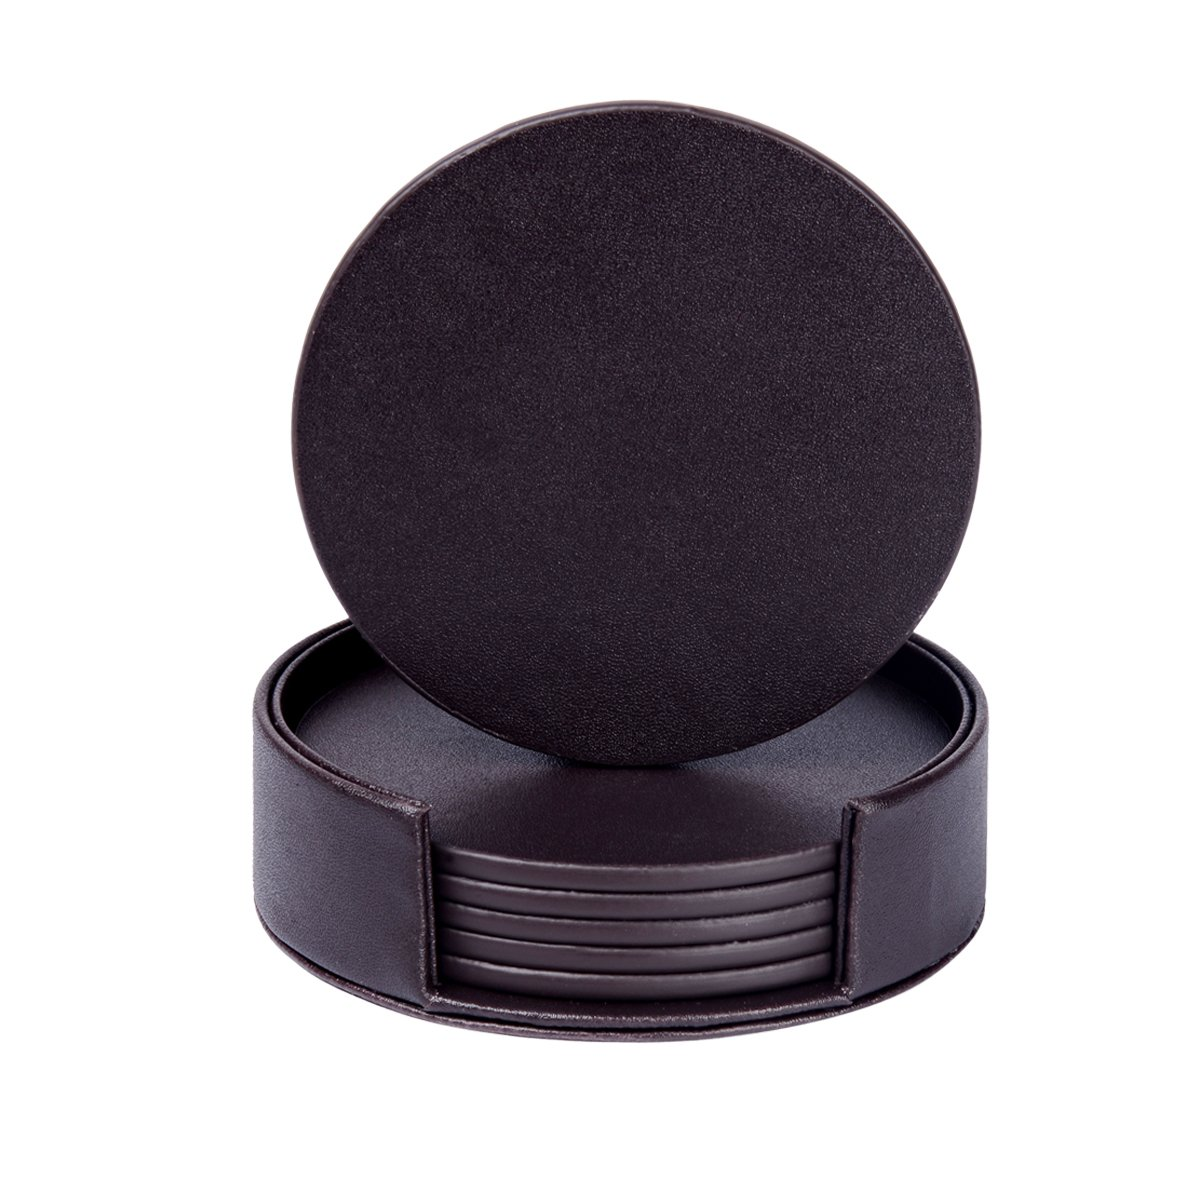 Leather Coasters Set of 6 with Holder,Round Cup Mat Pad for Home and Kitchen Use (Black)